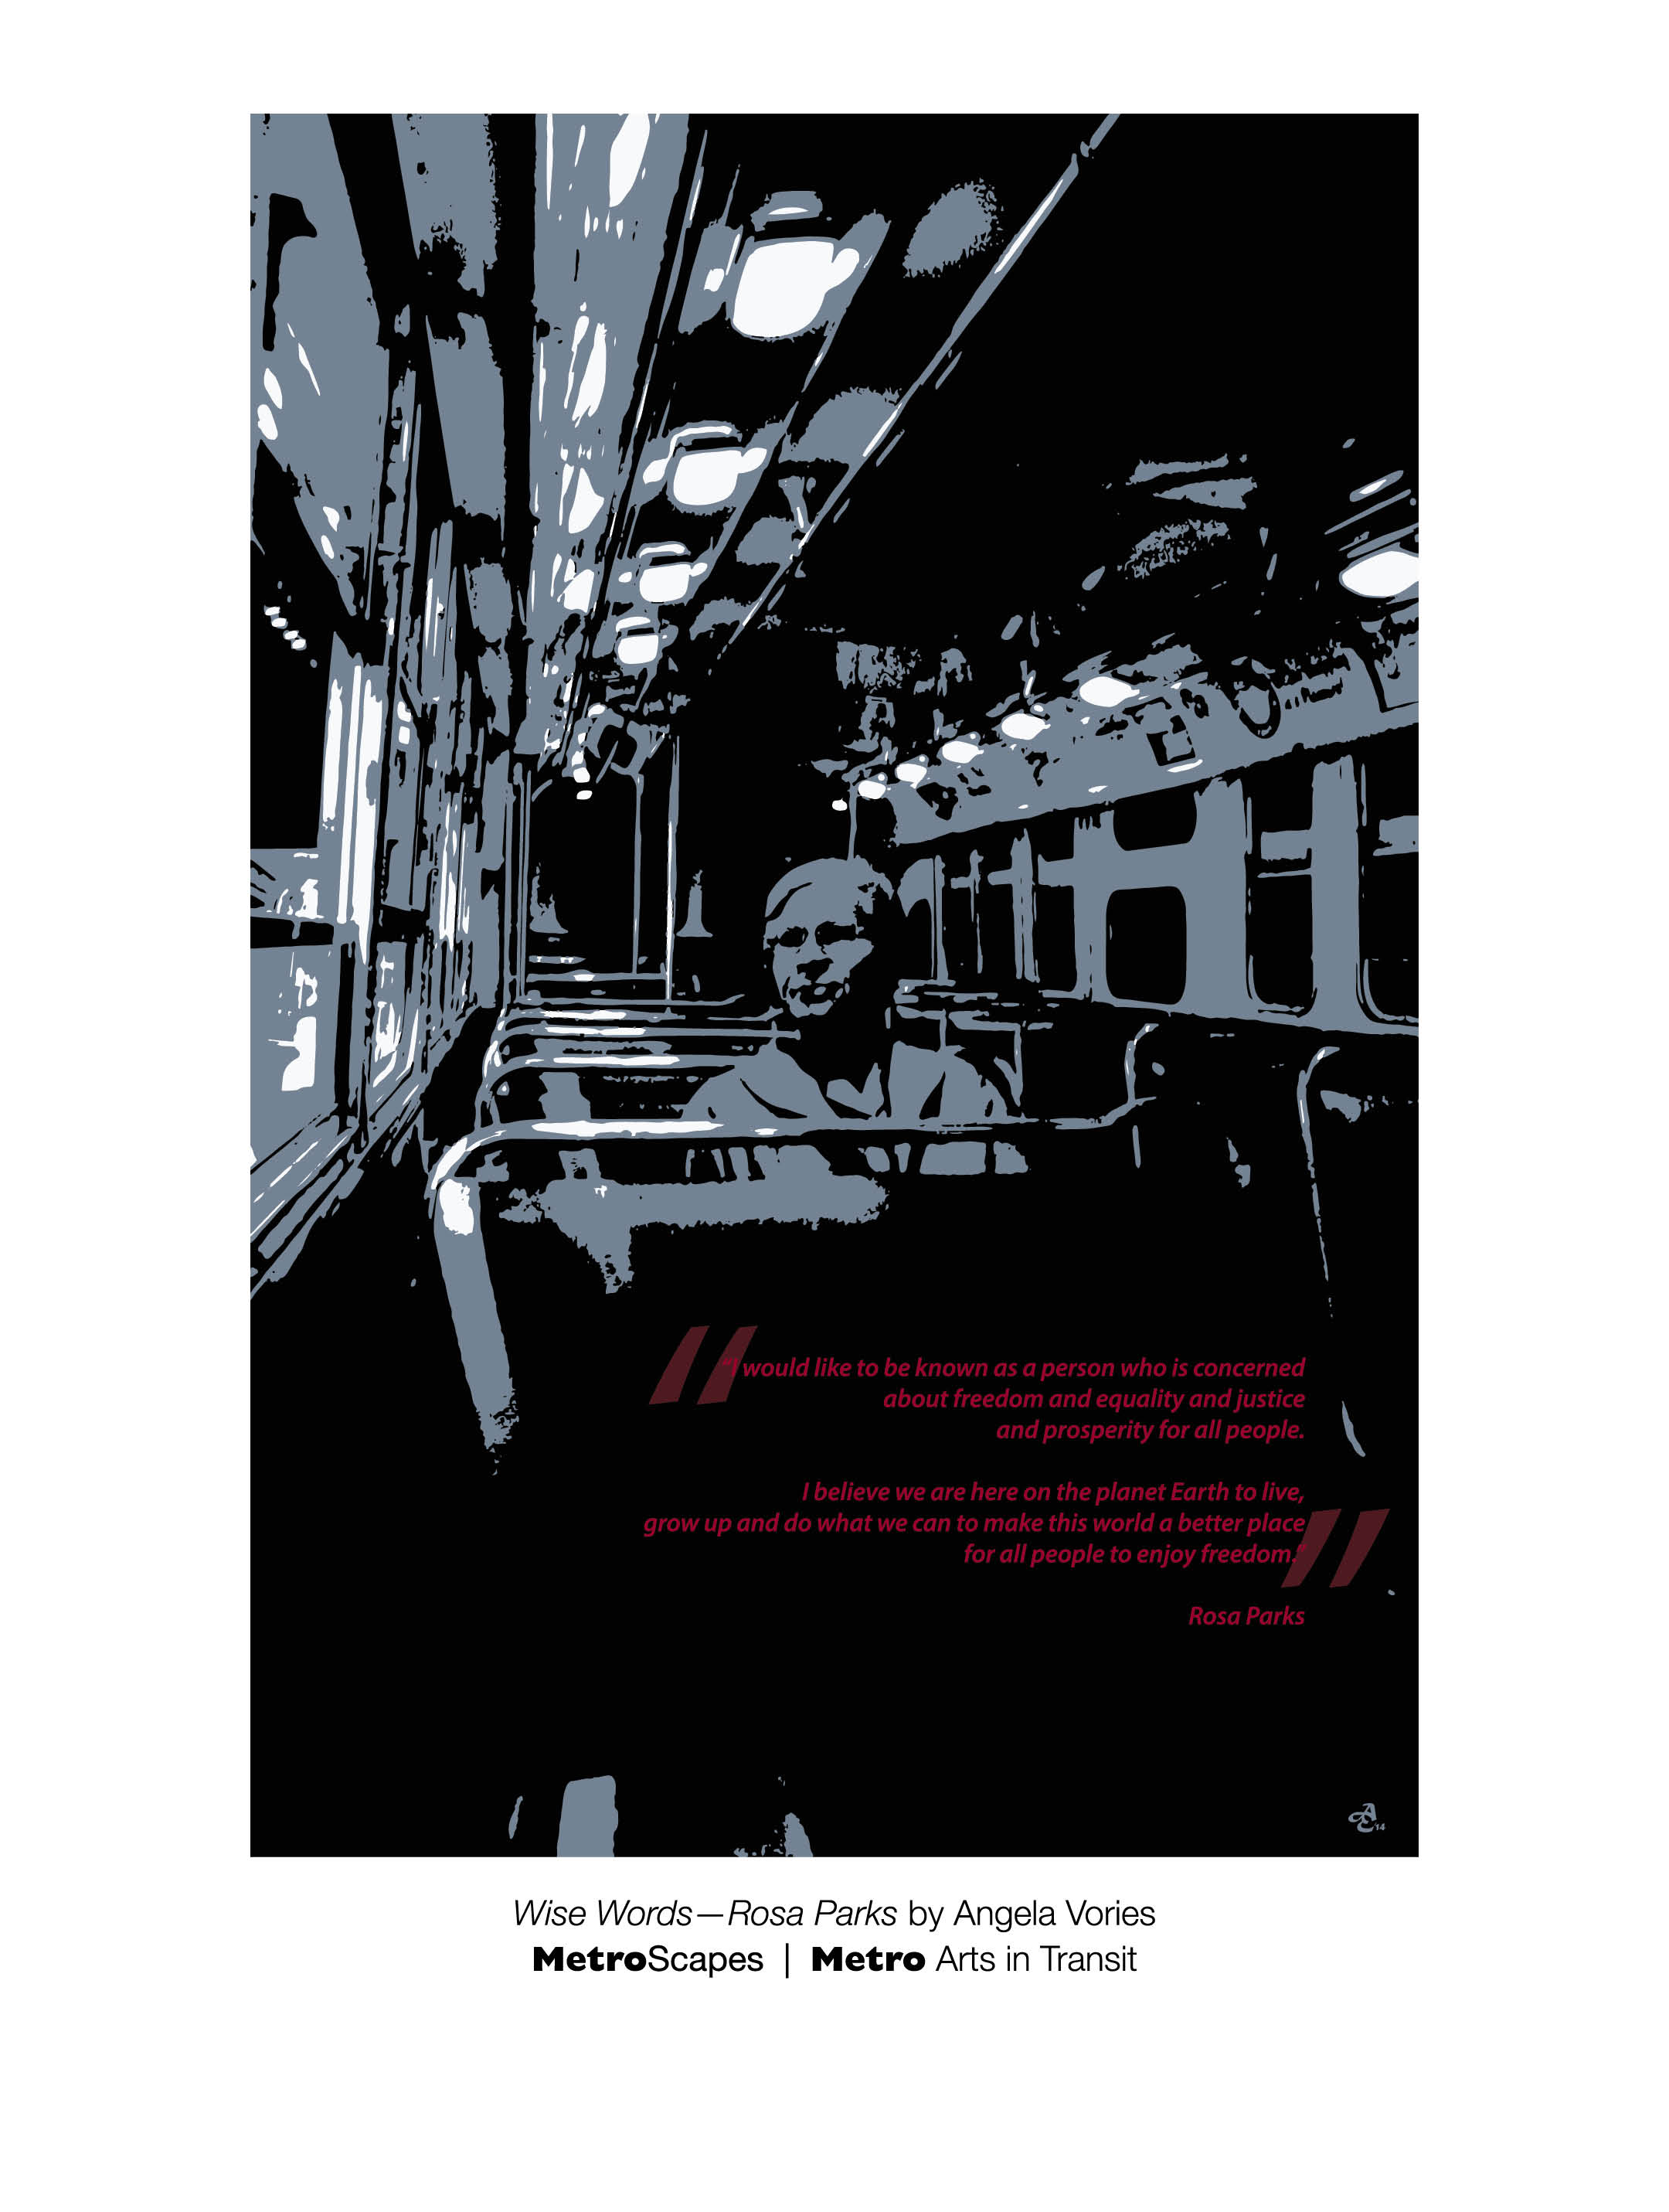 metroscapes 2015 poster wise words rosa parks